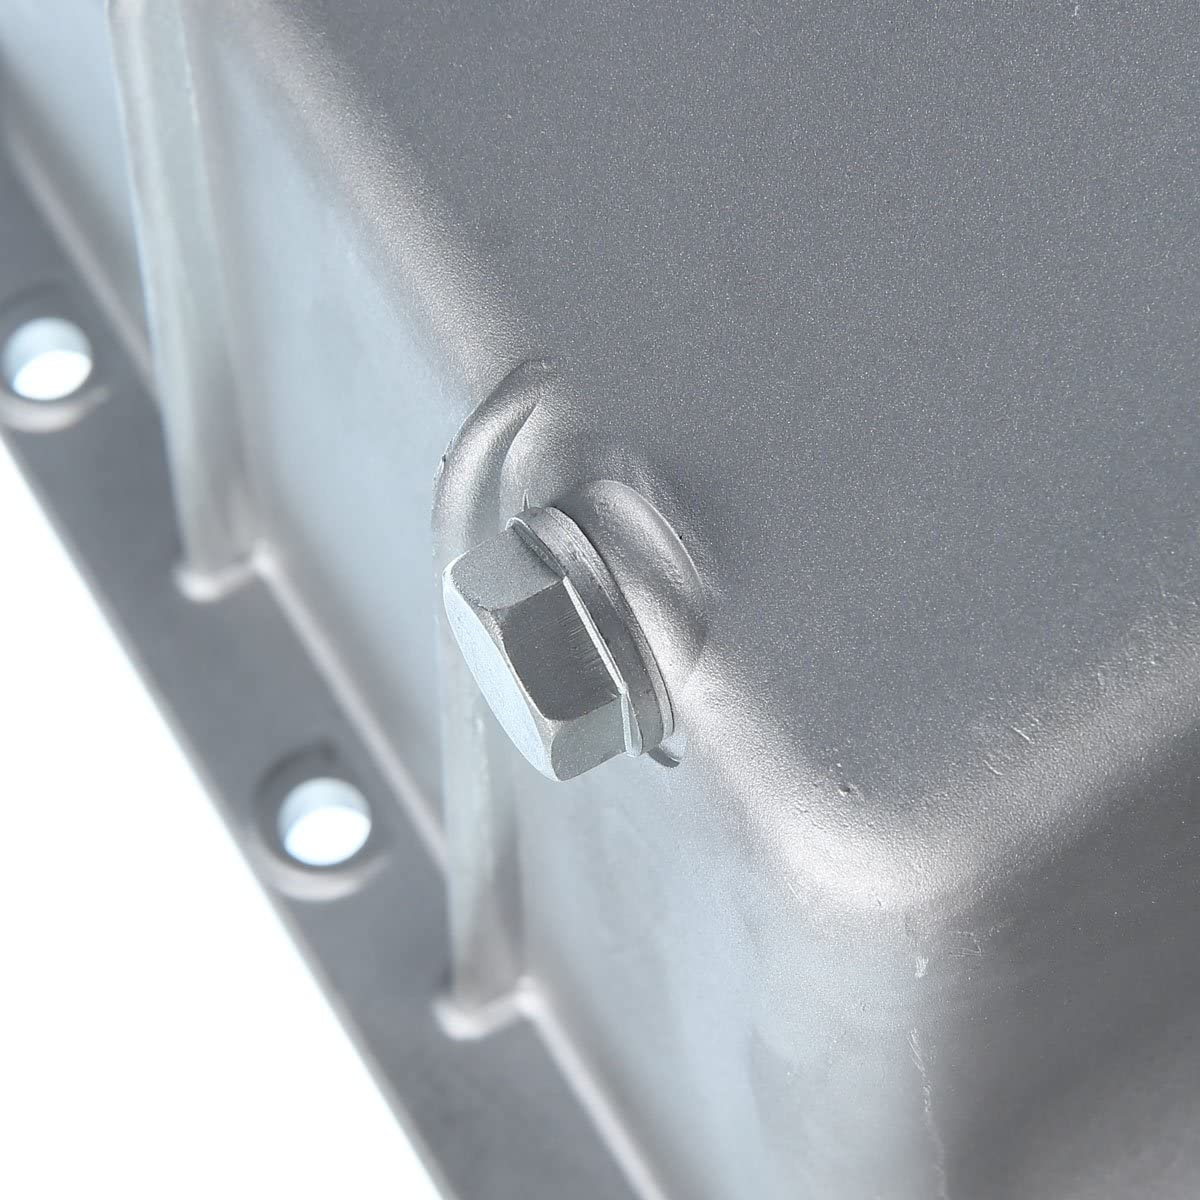 1993//10 Oil pan for E30 325i 325e 325ix M3 from 1983//10